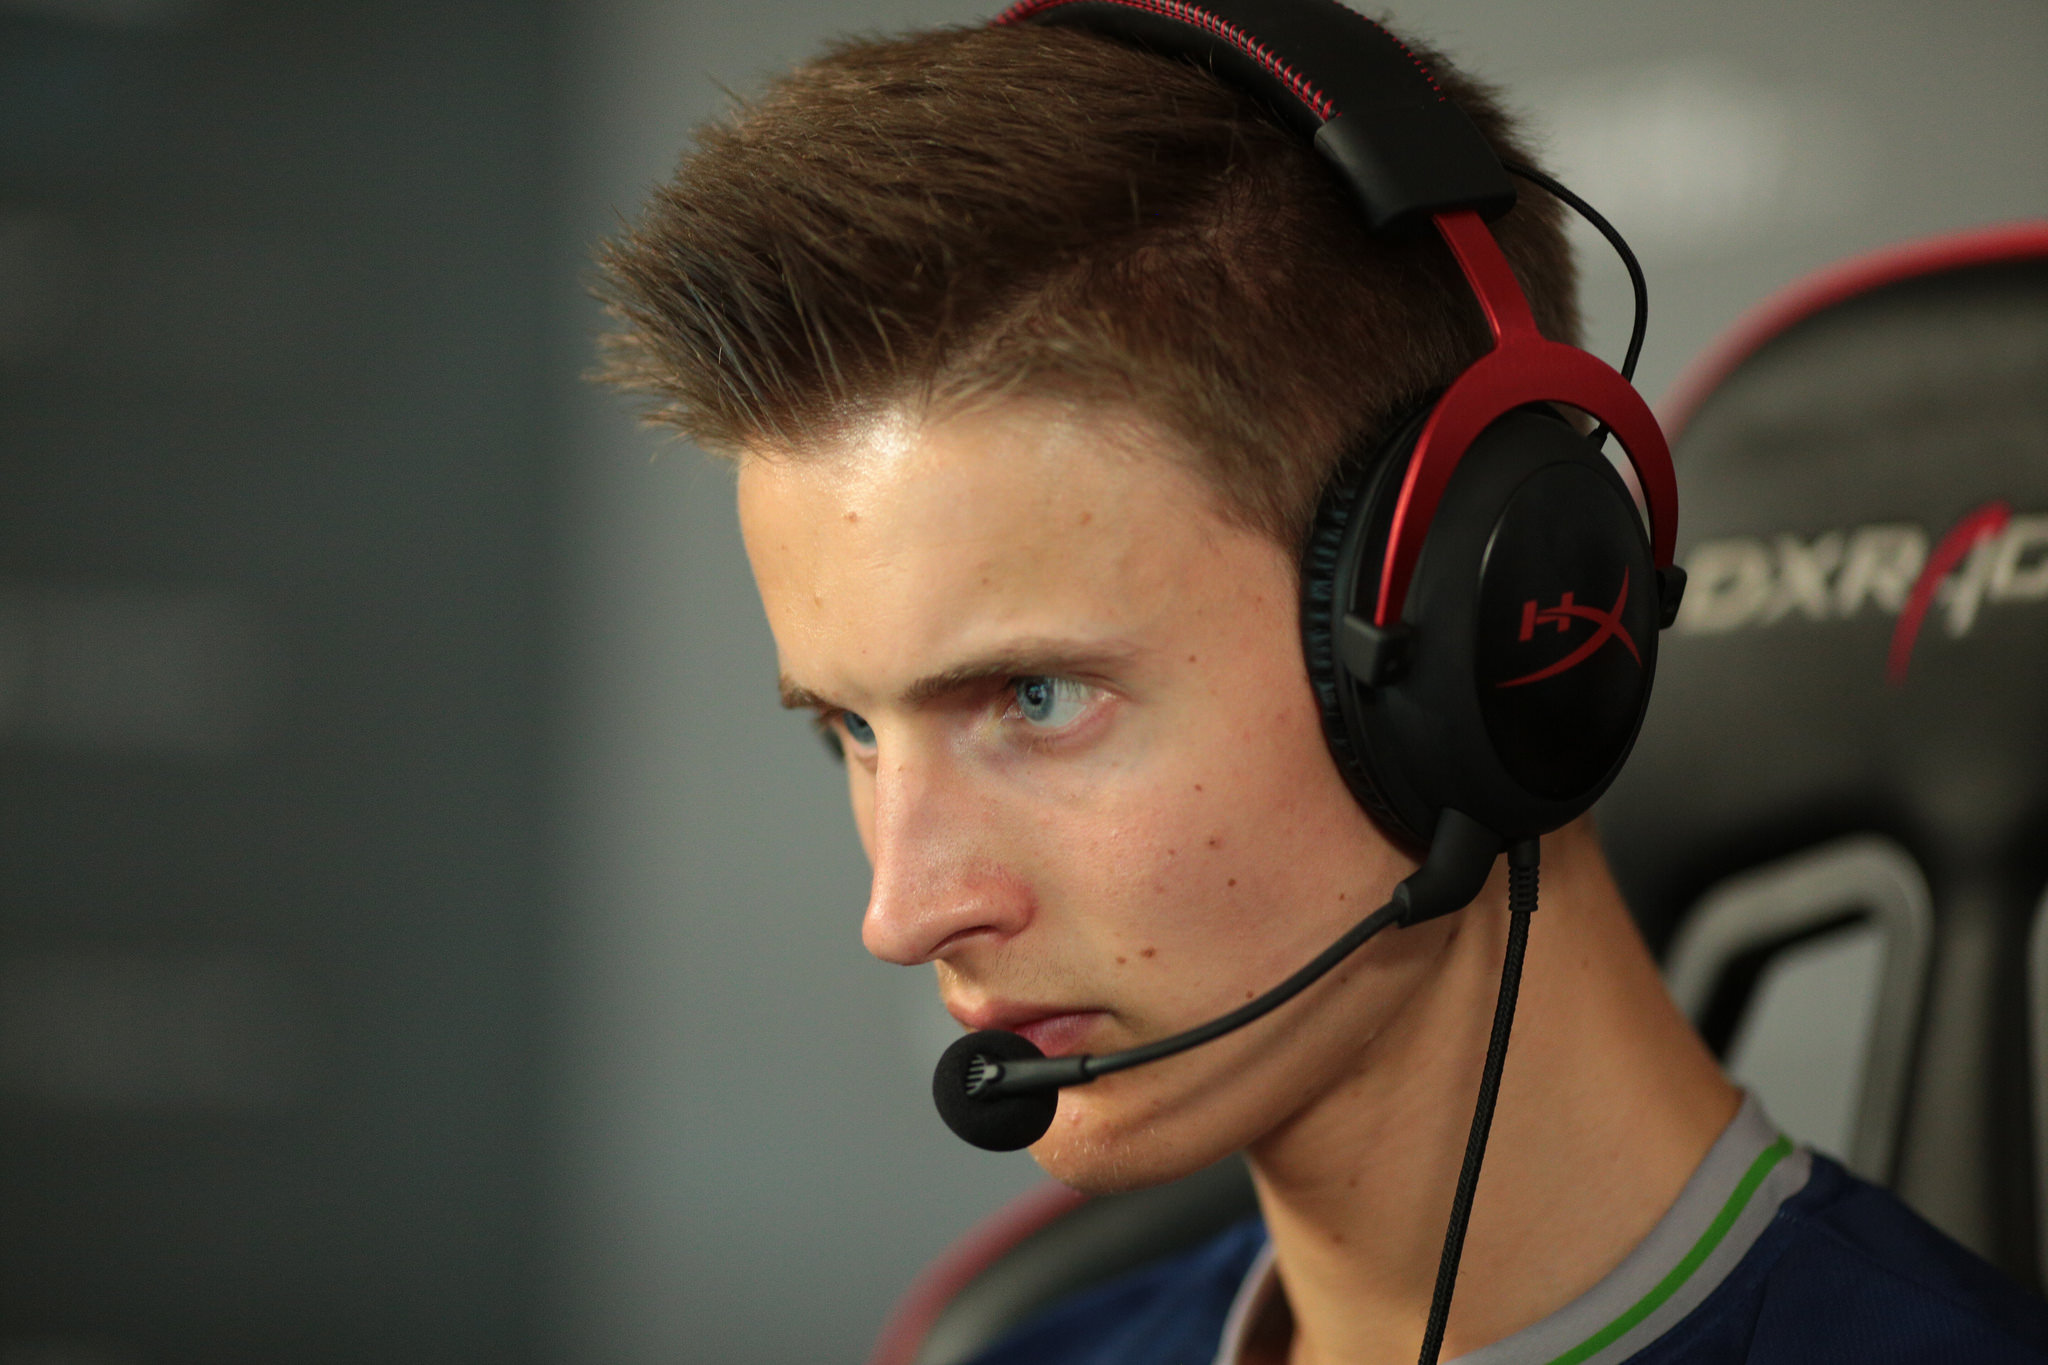 valde joins North